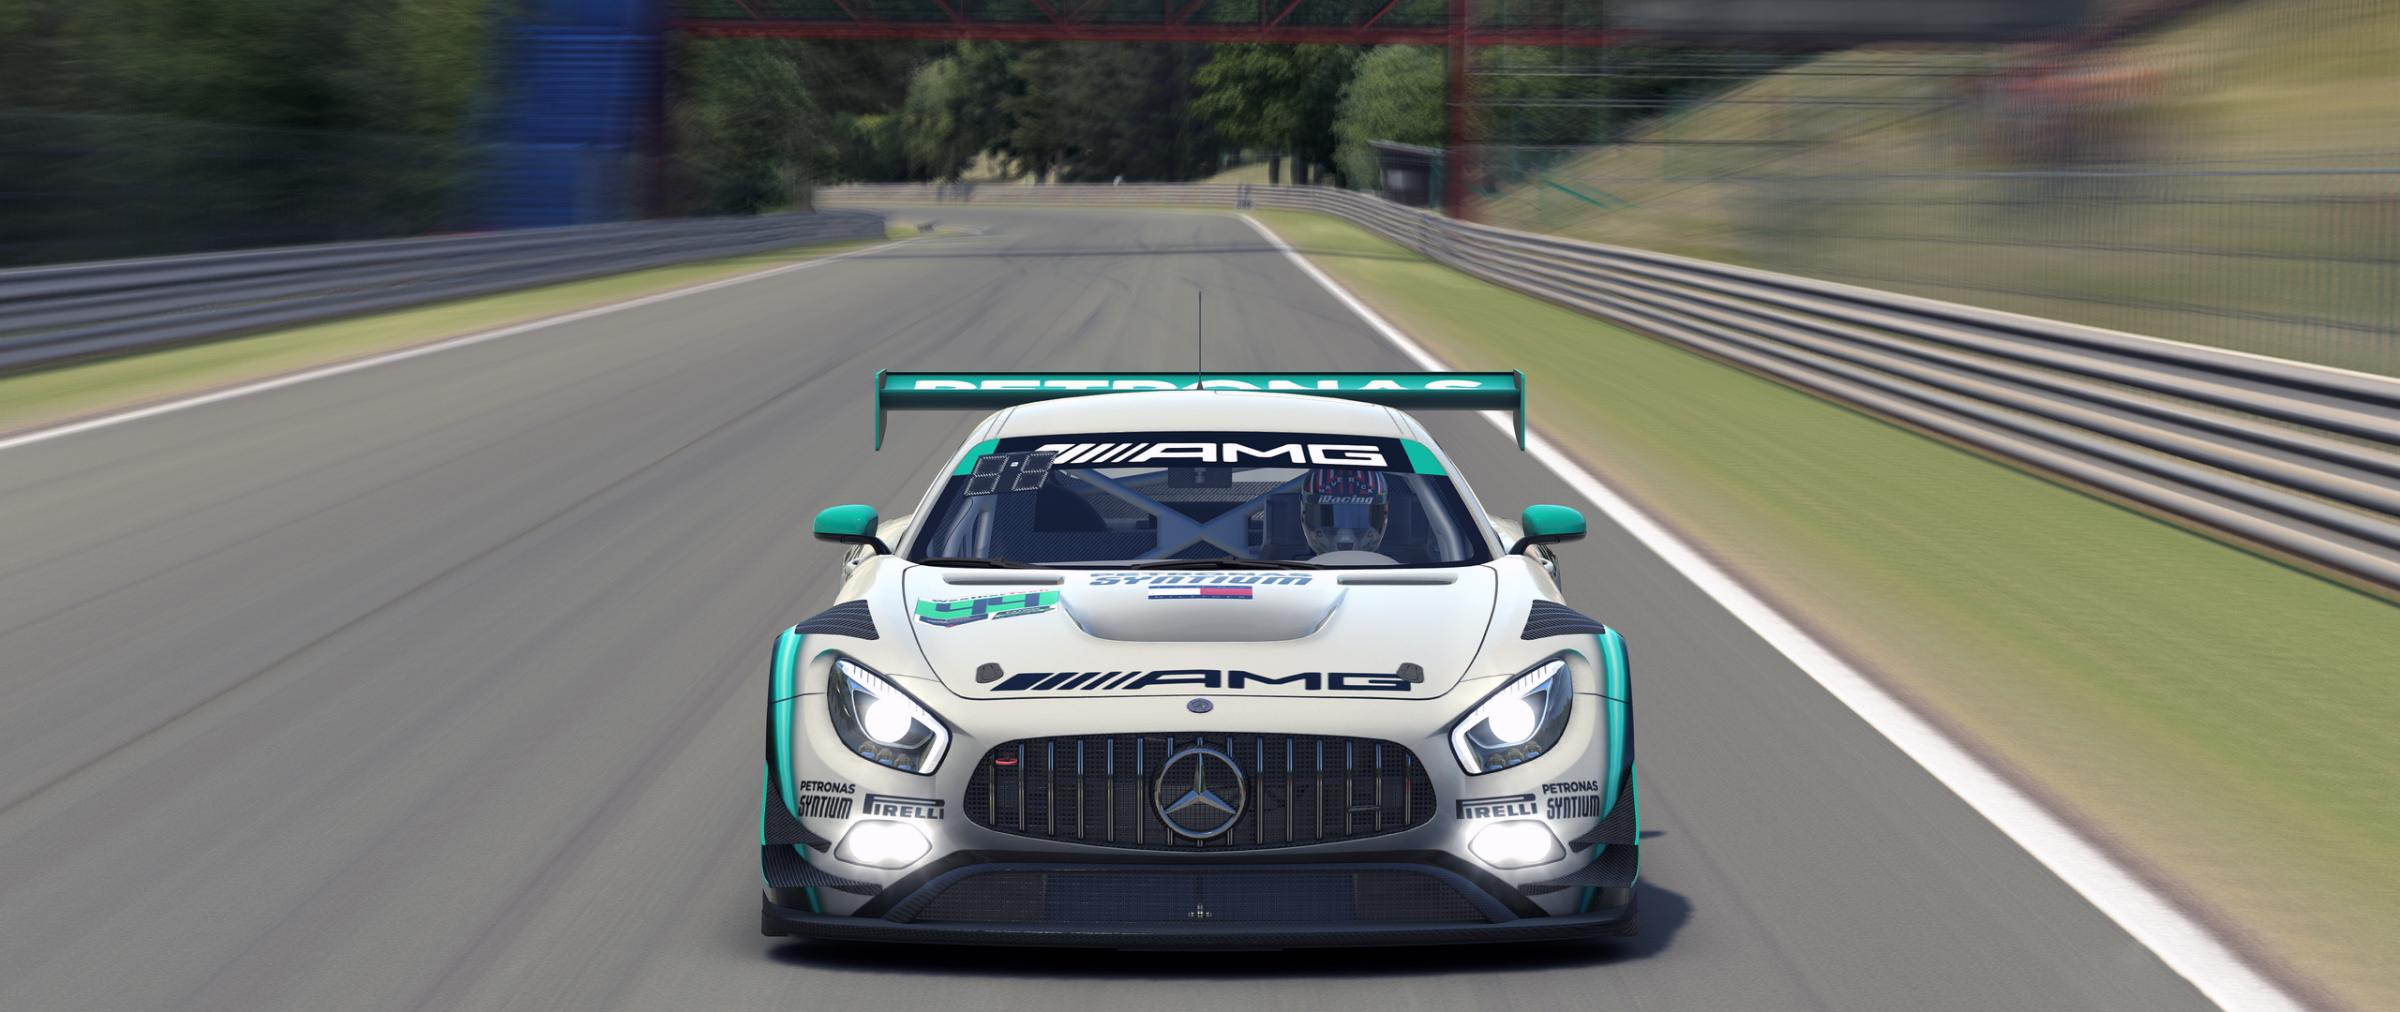 Preview of AMG Petronas Motorsport (2019) - Petronas by Timothy Collier